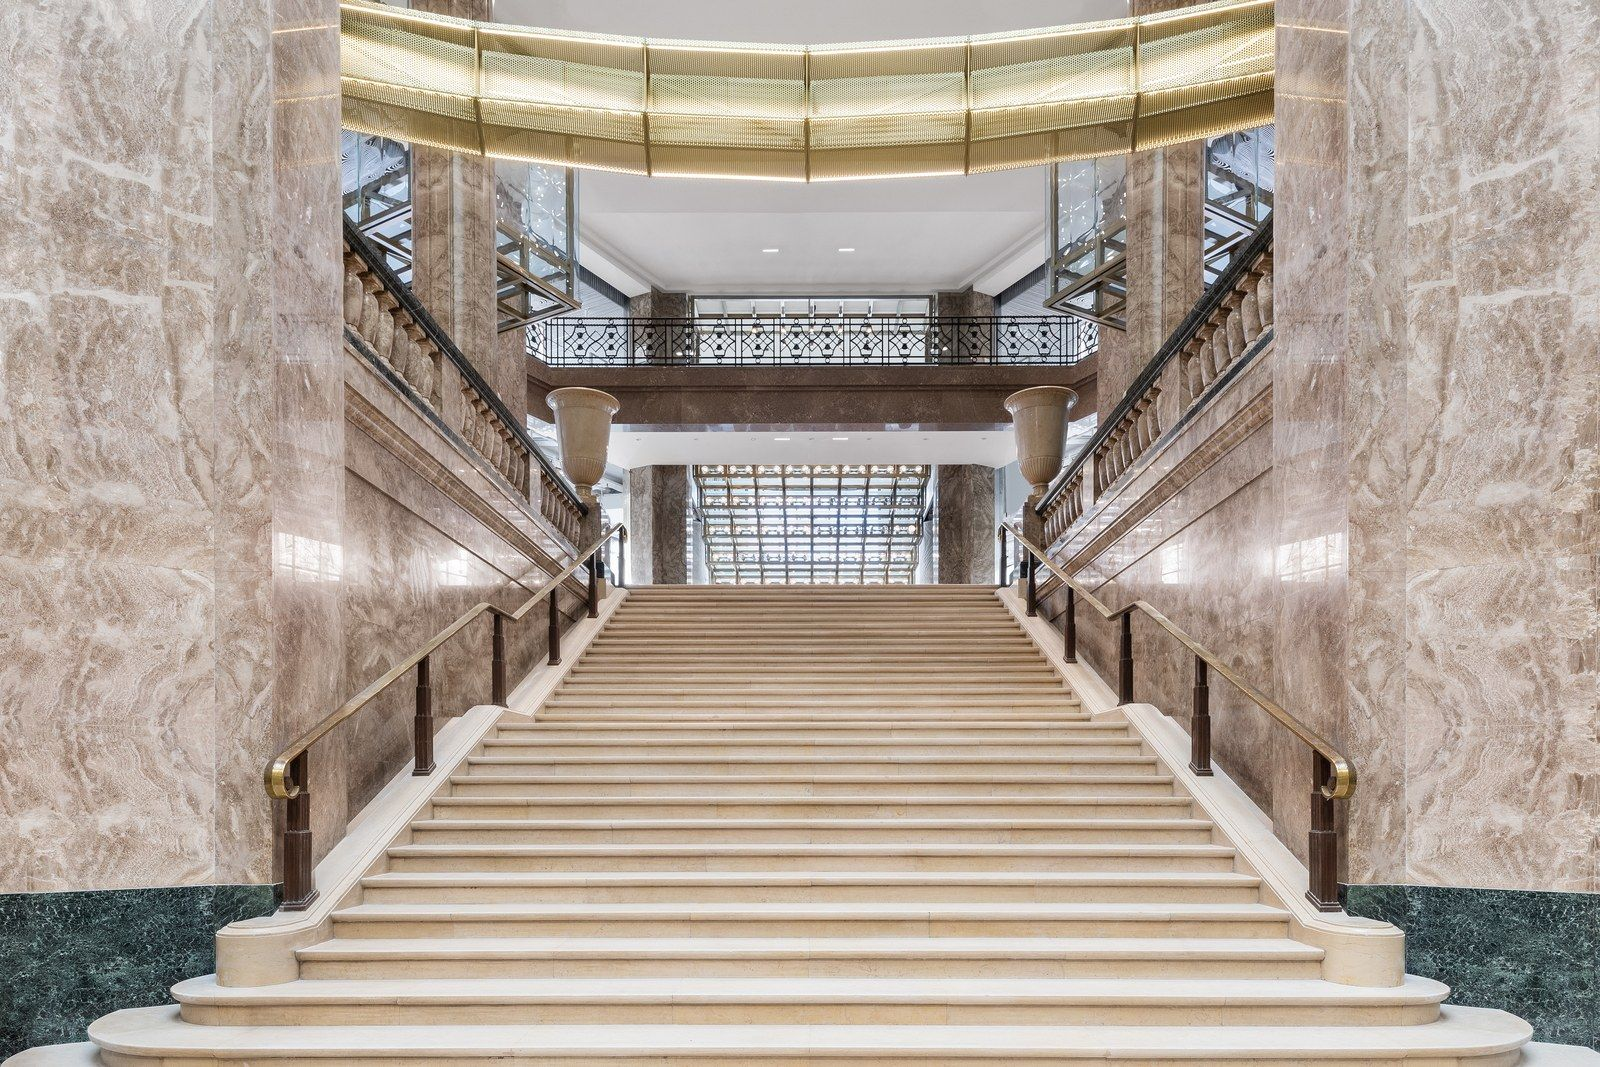 Bjarke Ingels S New Galeries Lafayette Fuses Historic And Contemporary Styles In Paris Paris Galeries Lafayette Types Of Architecture